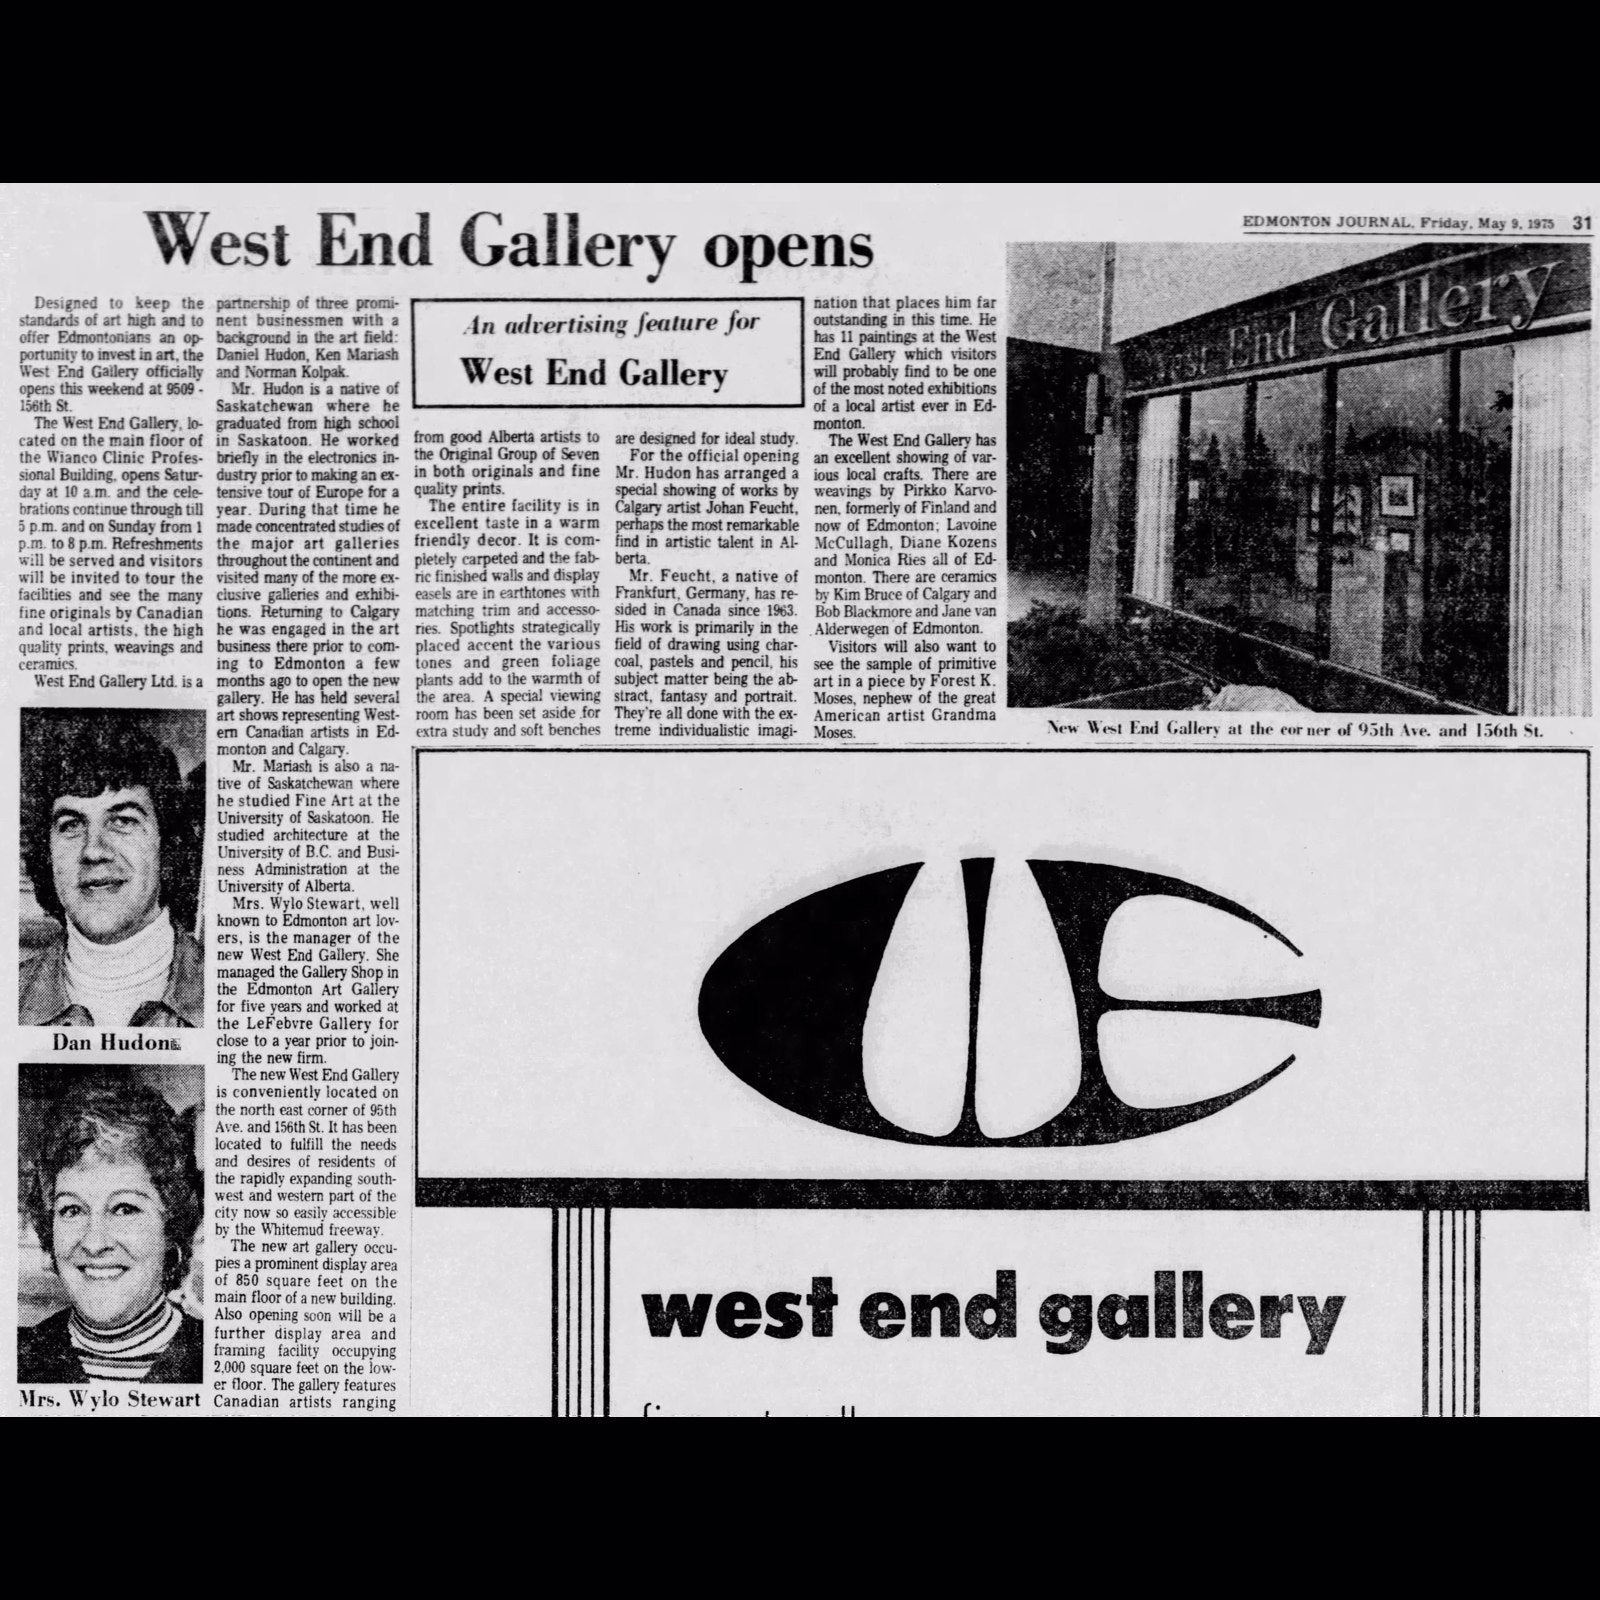 The History Behind the West End Gallery